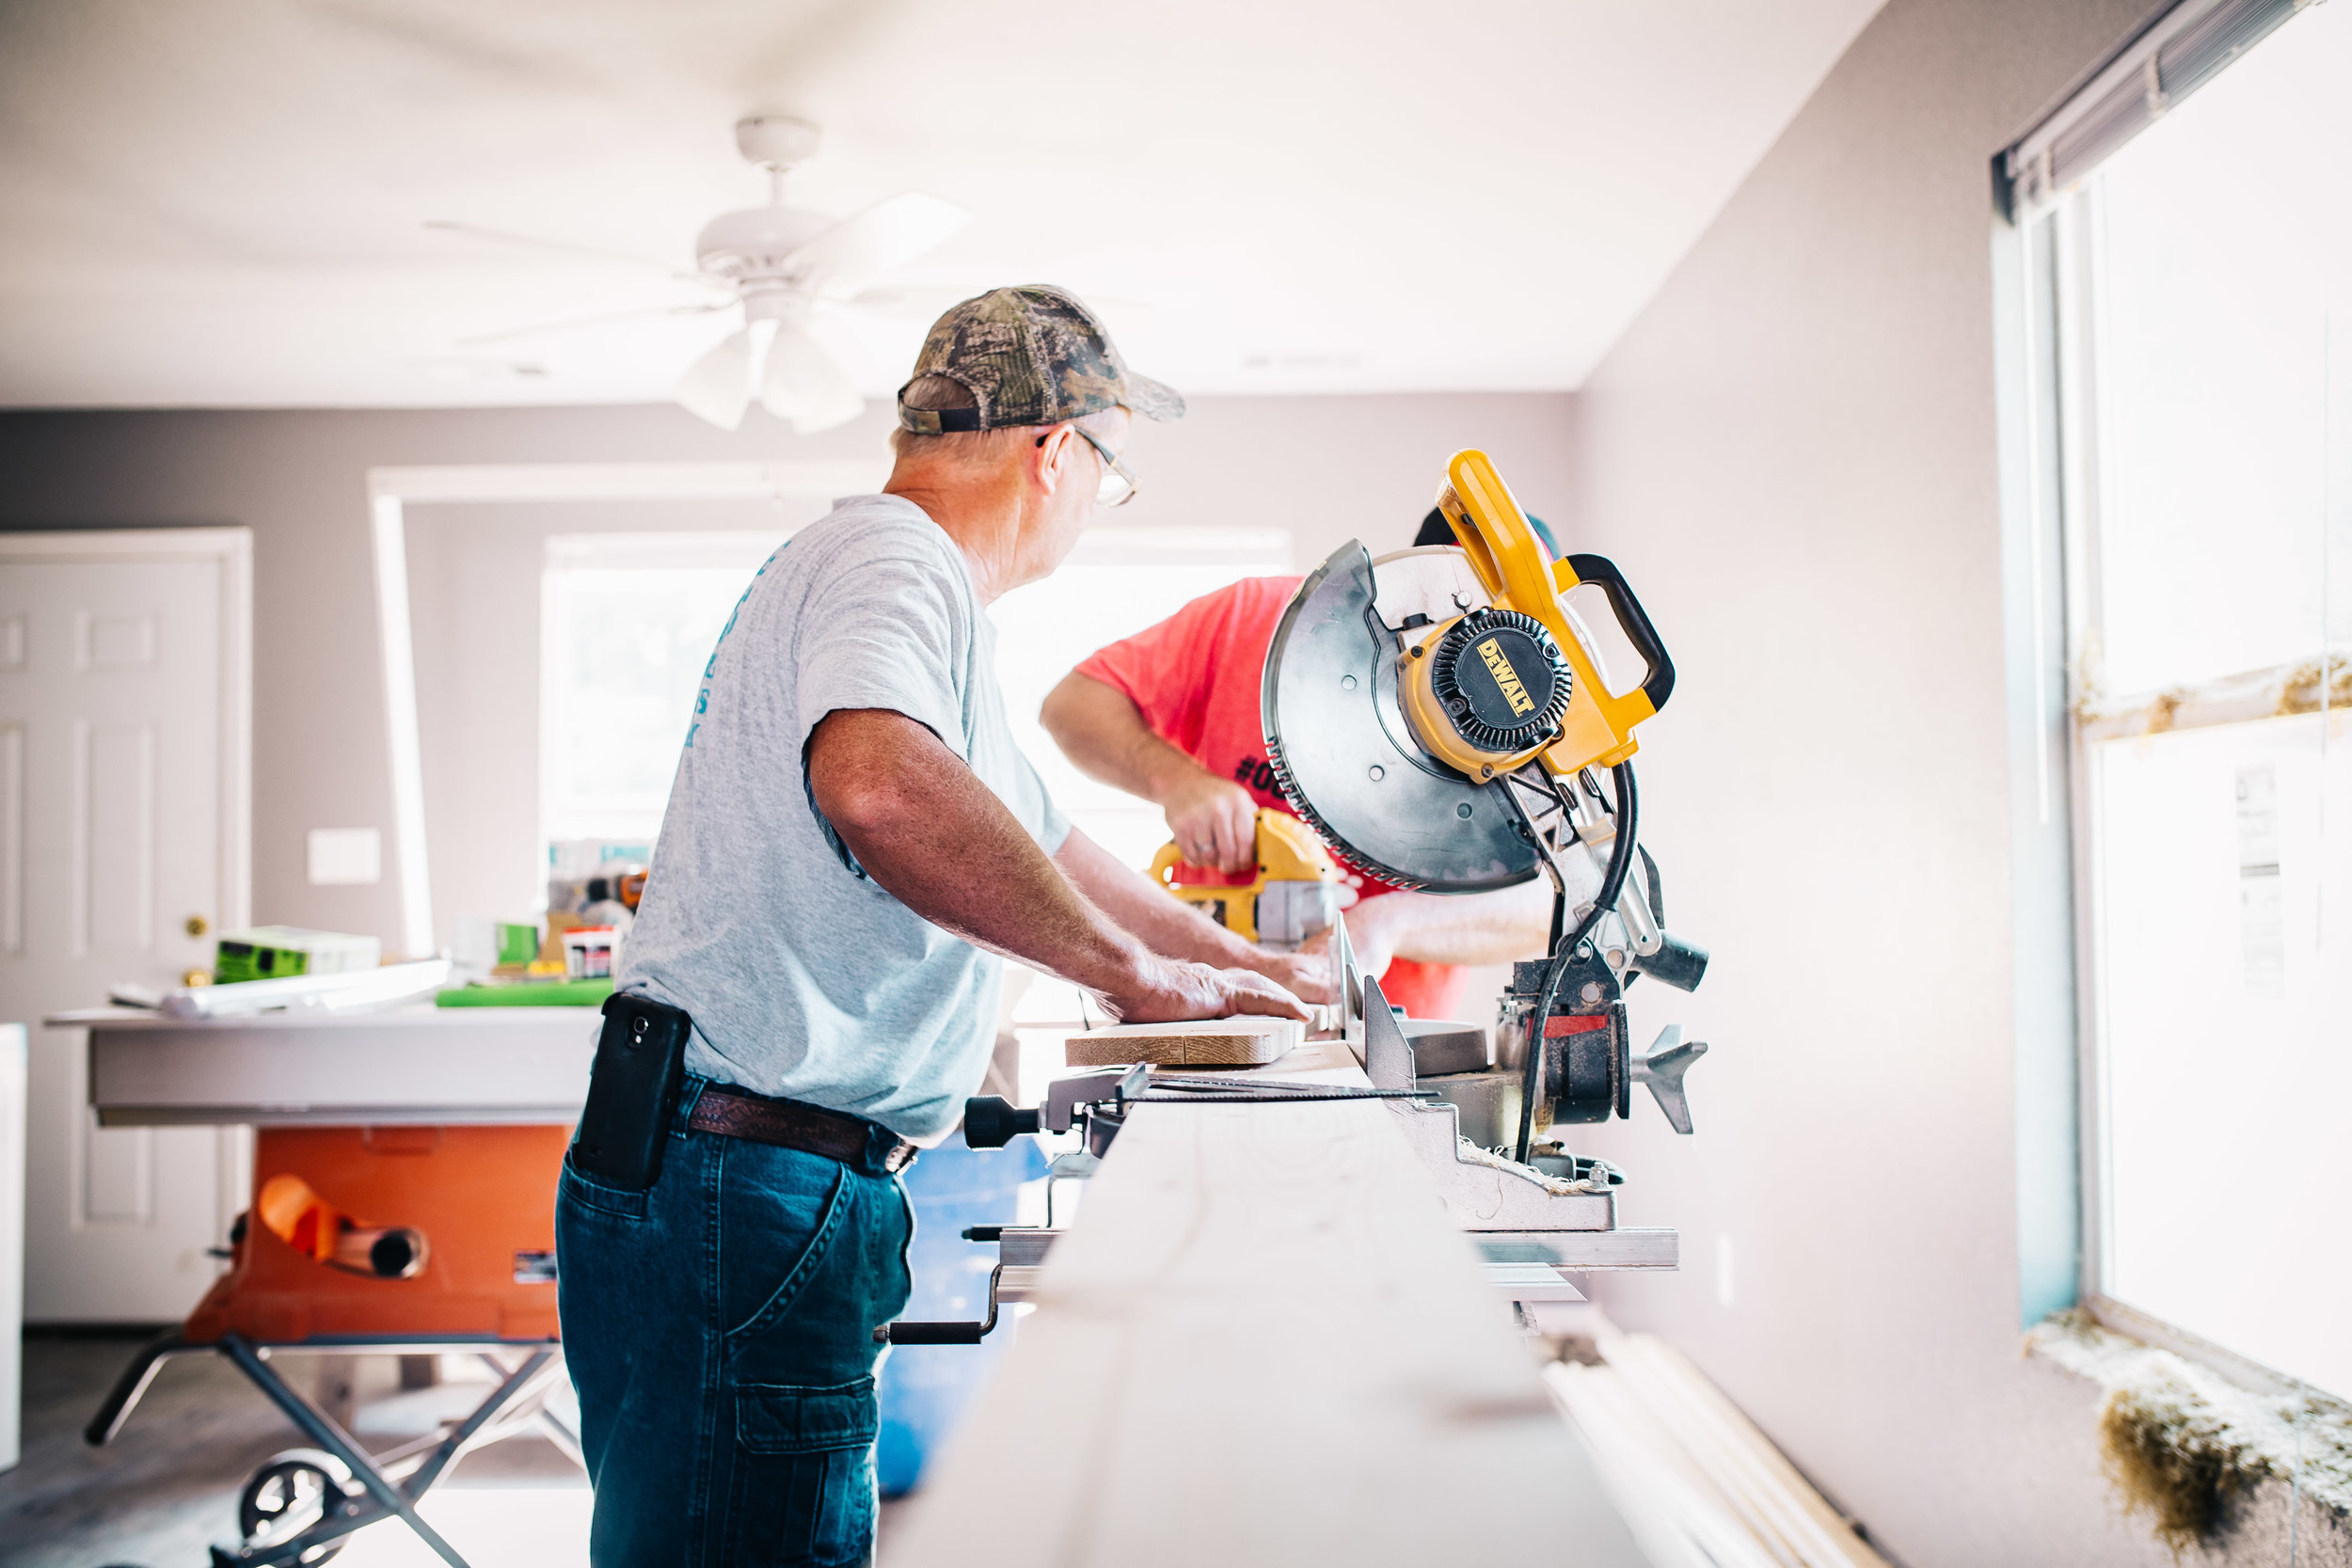 Installation - Traditionally, this is where you might expect the hard work to begin. But at the Kitchen Team we know you don't have time to keep track of multiple contractors, checking their progress and the quality of their work. That's why we manage the whole installation process for you. We'll make sure everything runs like clockwork, with careful attention to even the smallest of details.